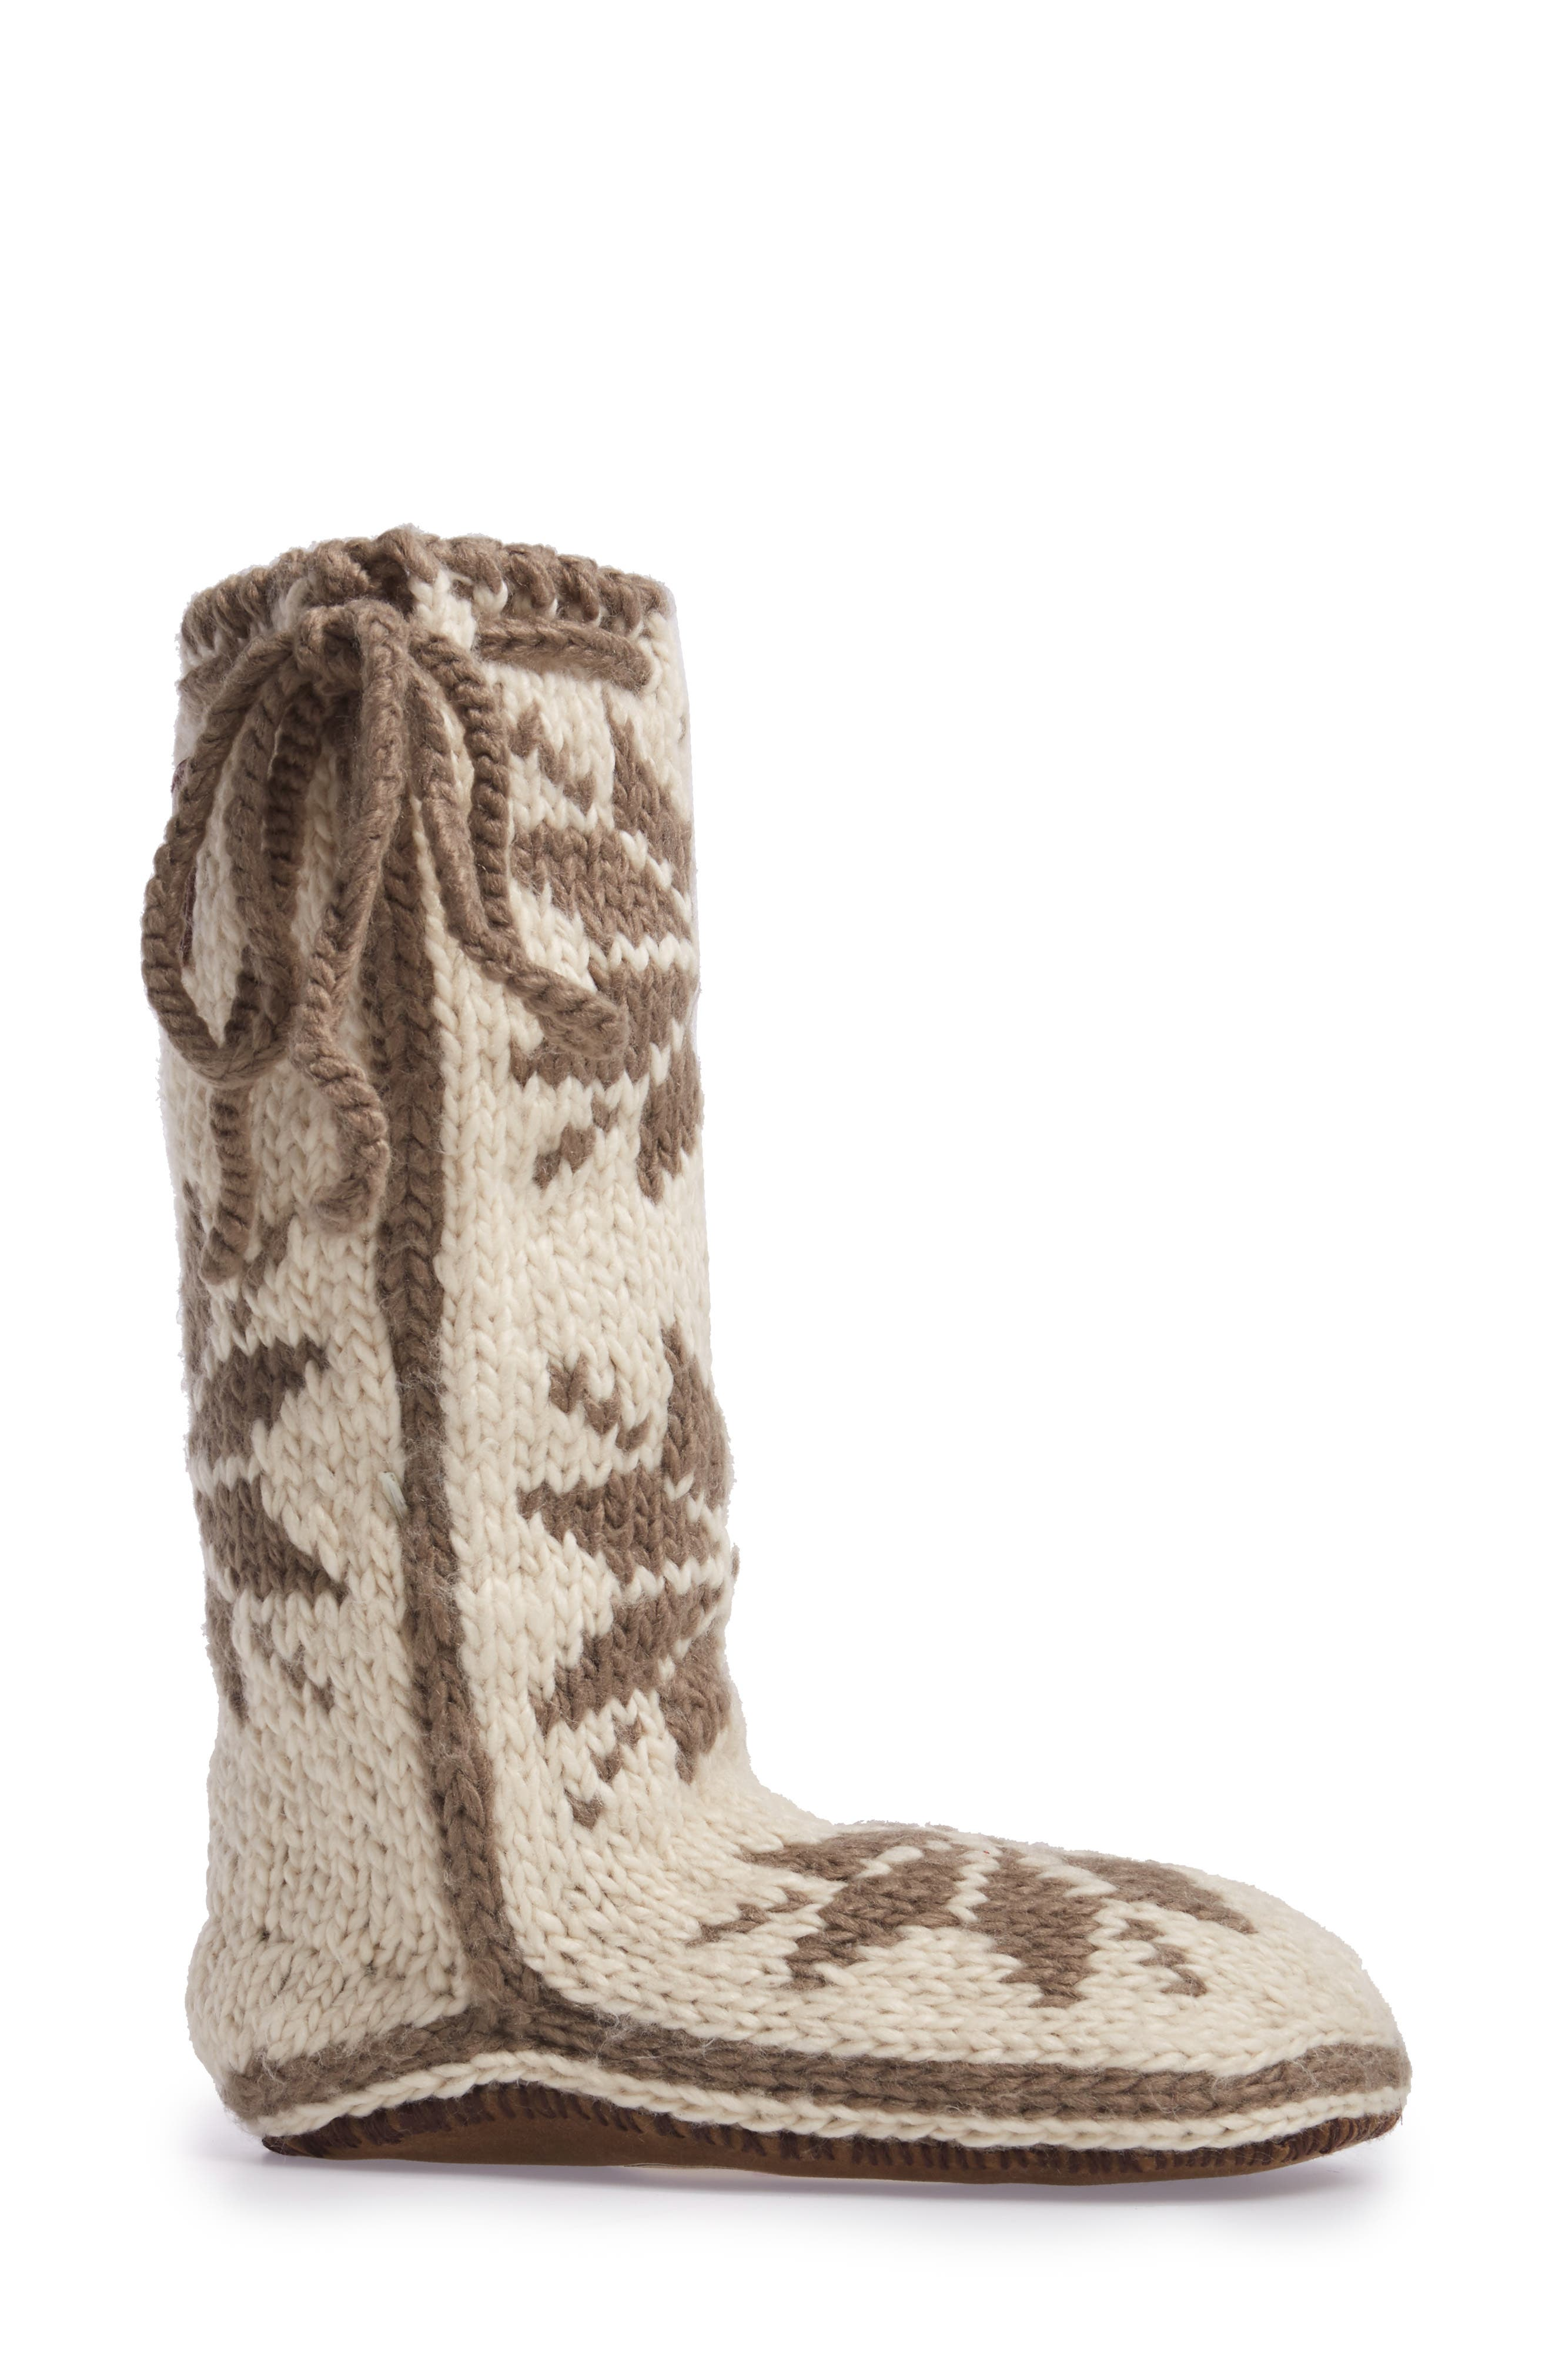 'Chalet' Socks,                             Alternate thumbnail 18, color,